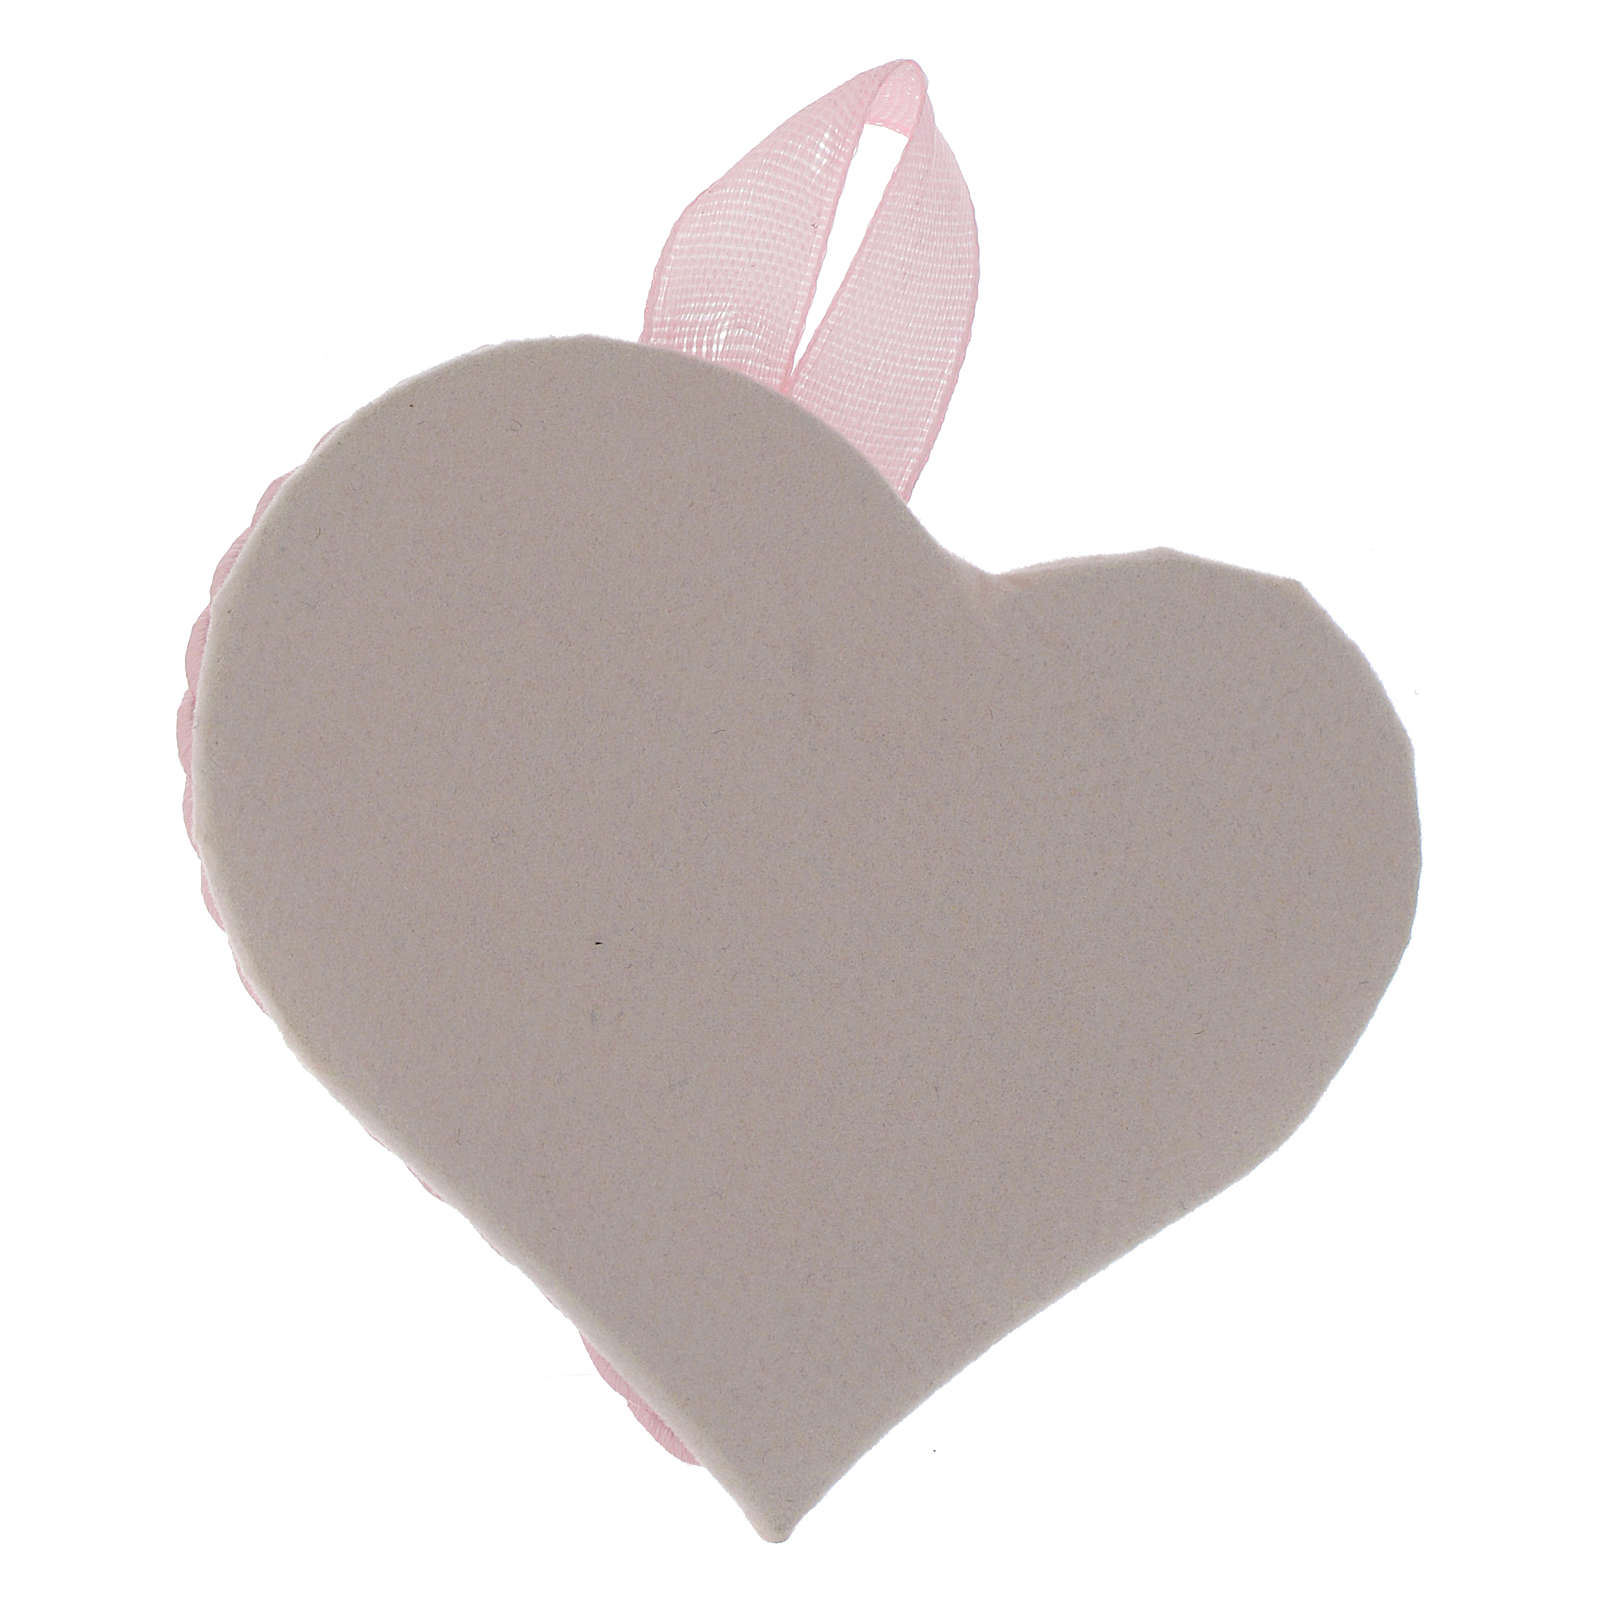 Guardian Angel medallion crib toy in silver heart shape pink colour 4